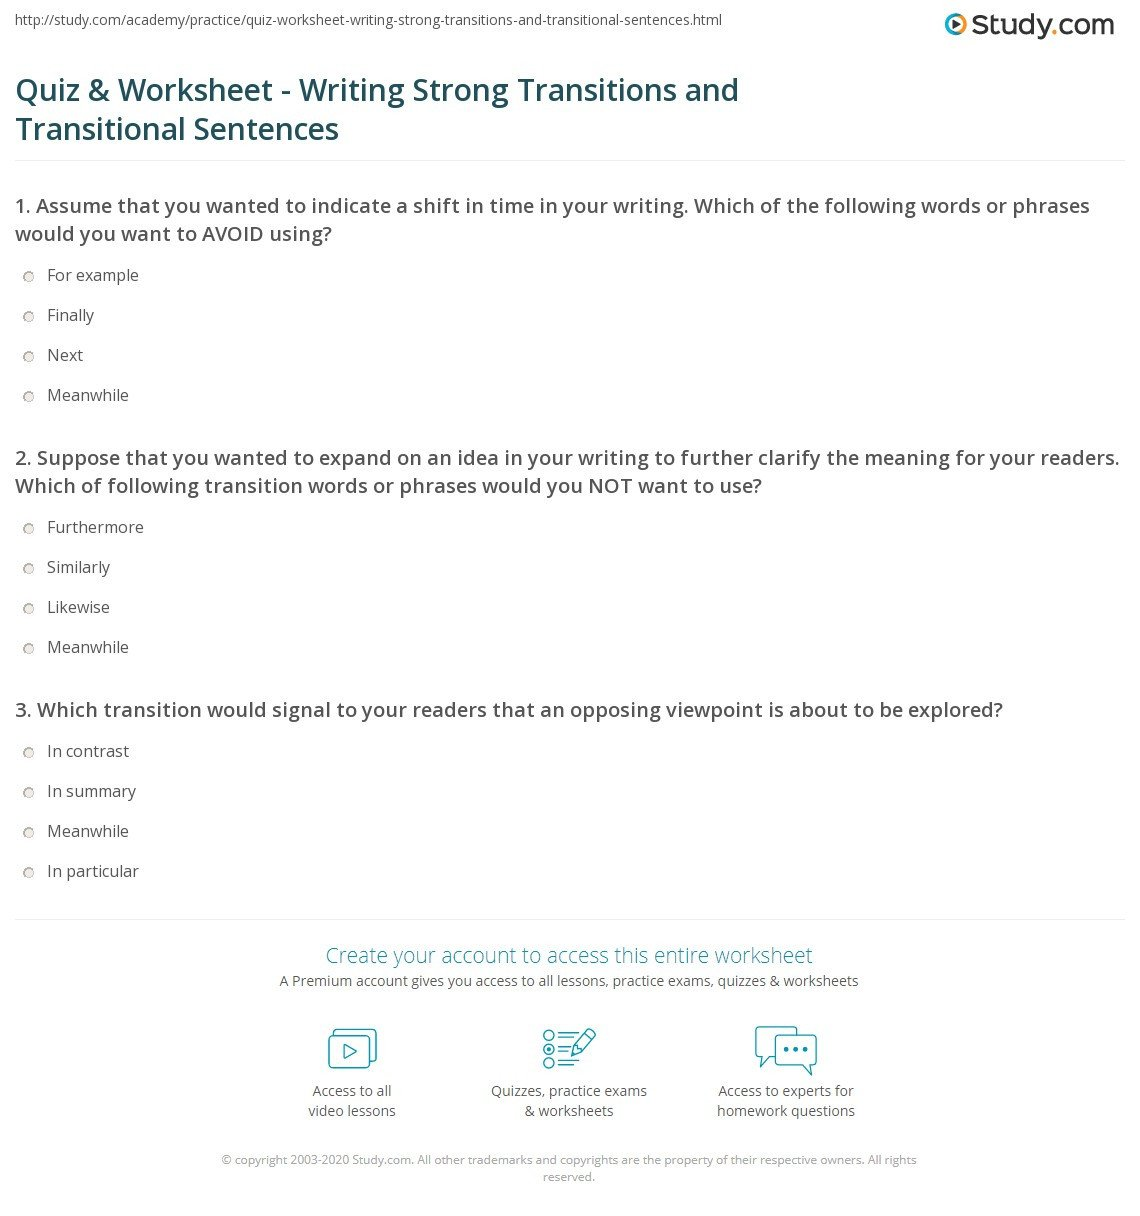 quiz worksheet writing strong transitions and transitional sentences